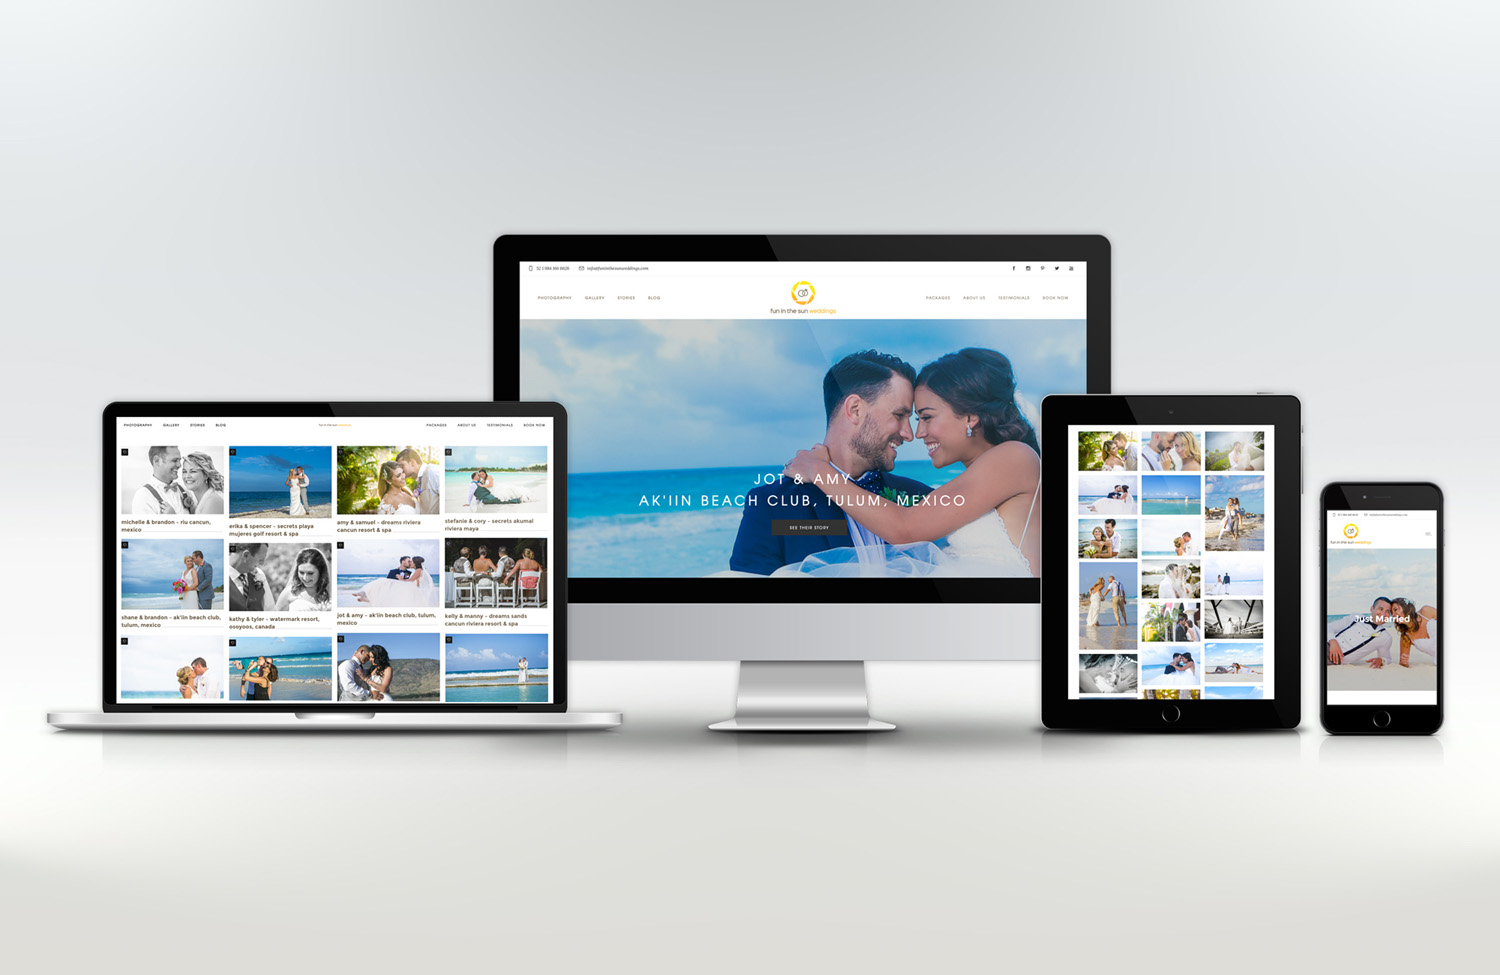 Fun In The Sun Weddings, Riviera Maya Destination Wedding Photography Business, Launches Its New, User-Friendly, Solocube-Designed Website